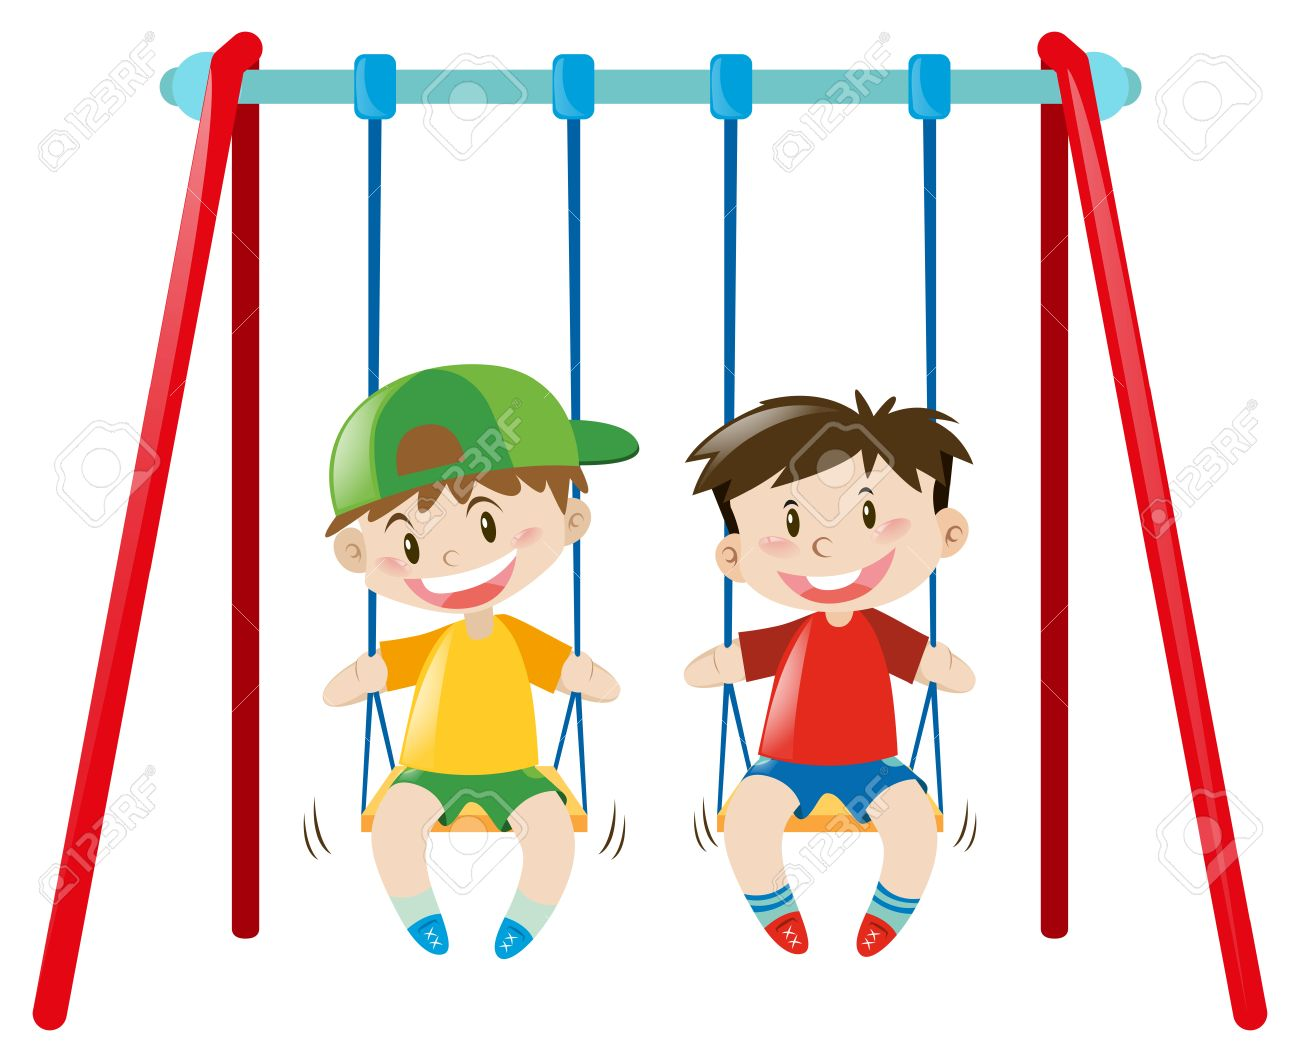 two boys on the swings illustration royalty free cliparts vectors rh 123rf com sewing clip art images sewing clip art for business cards